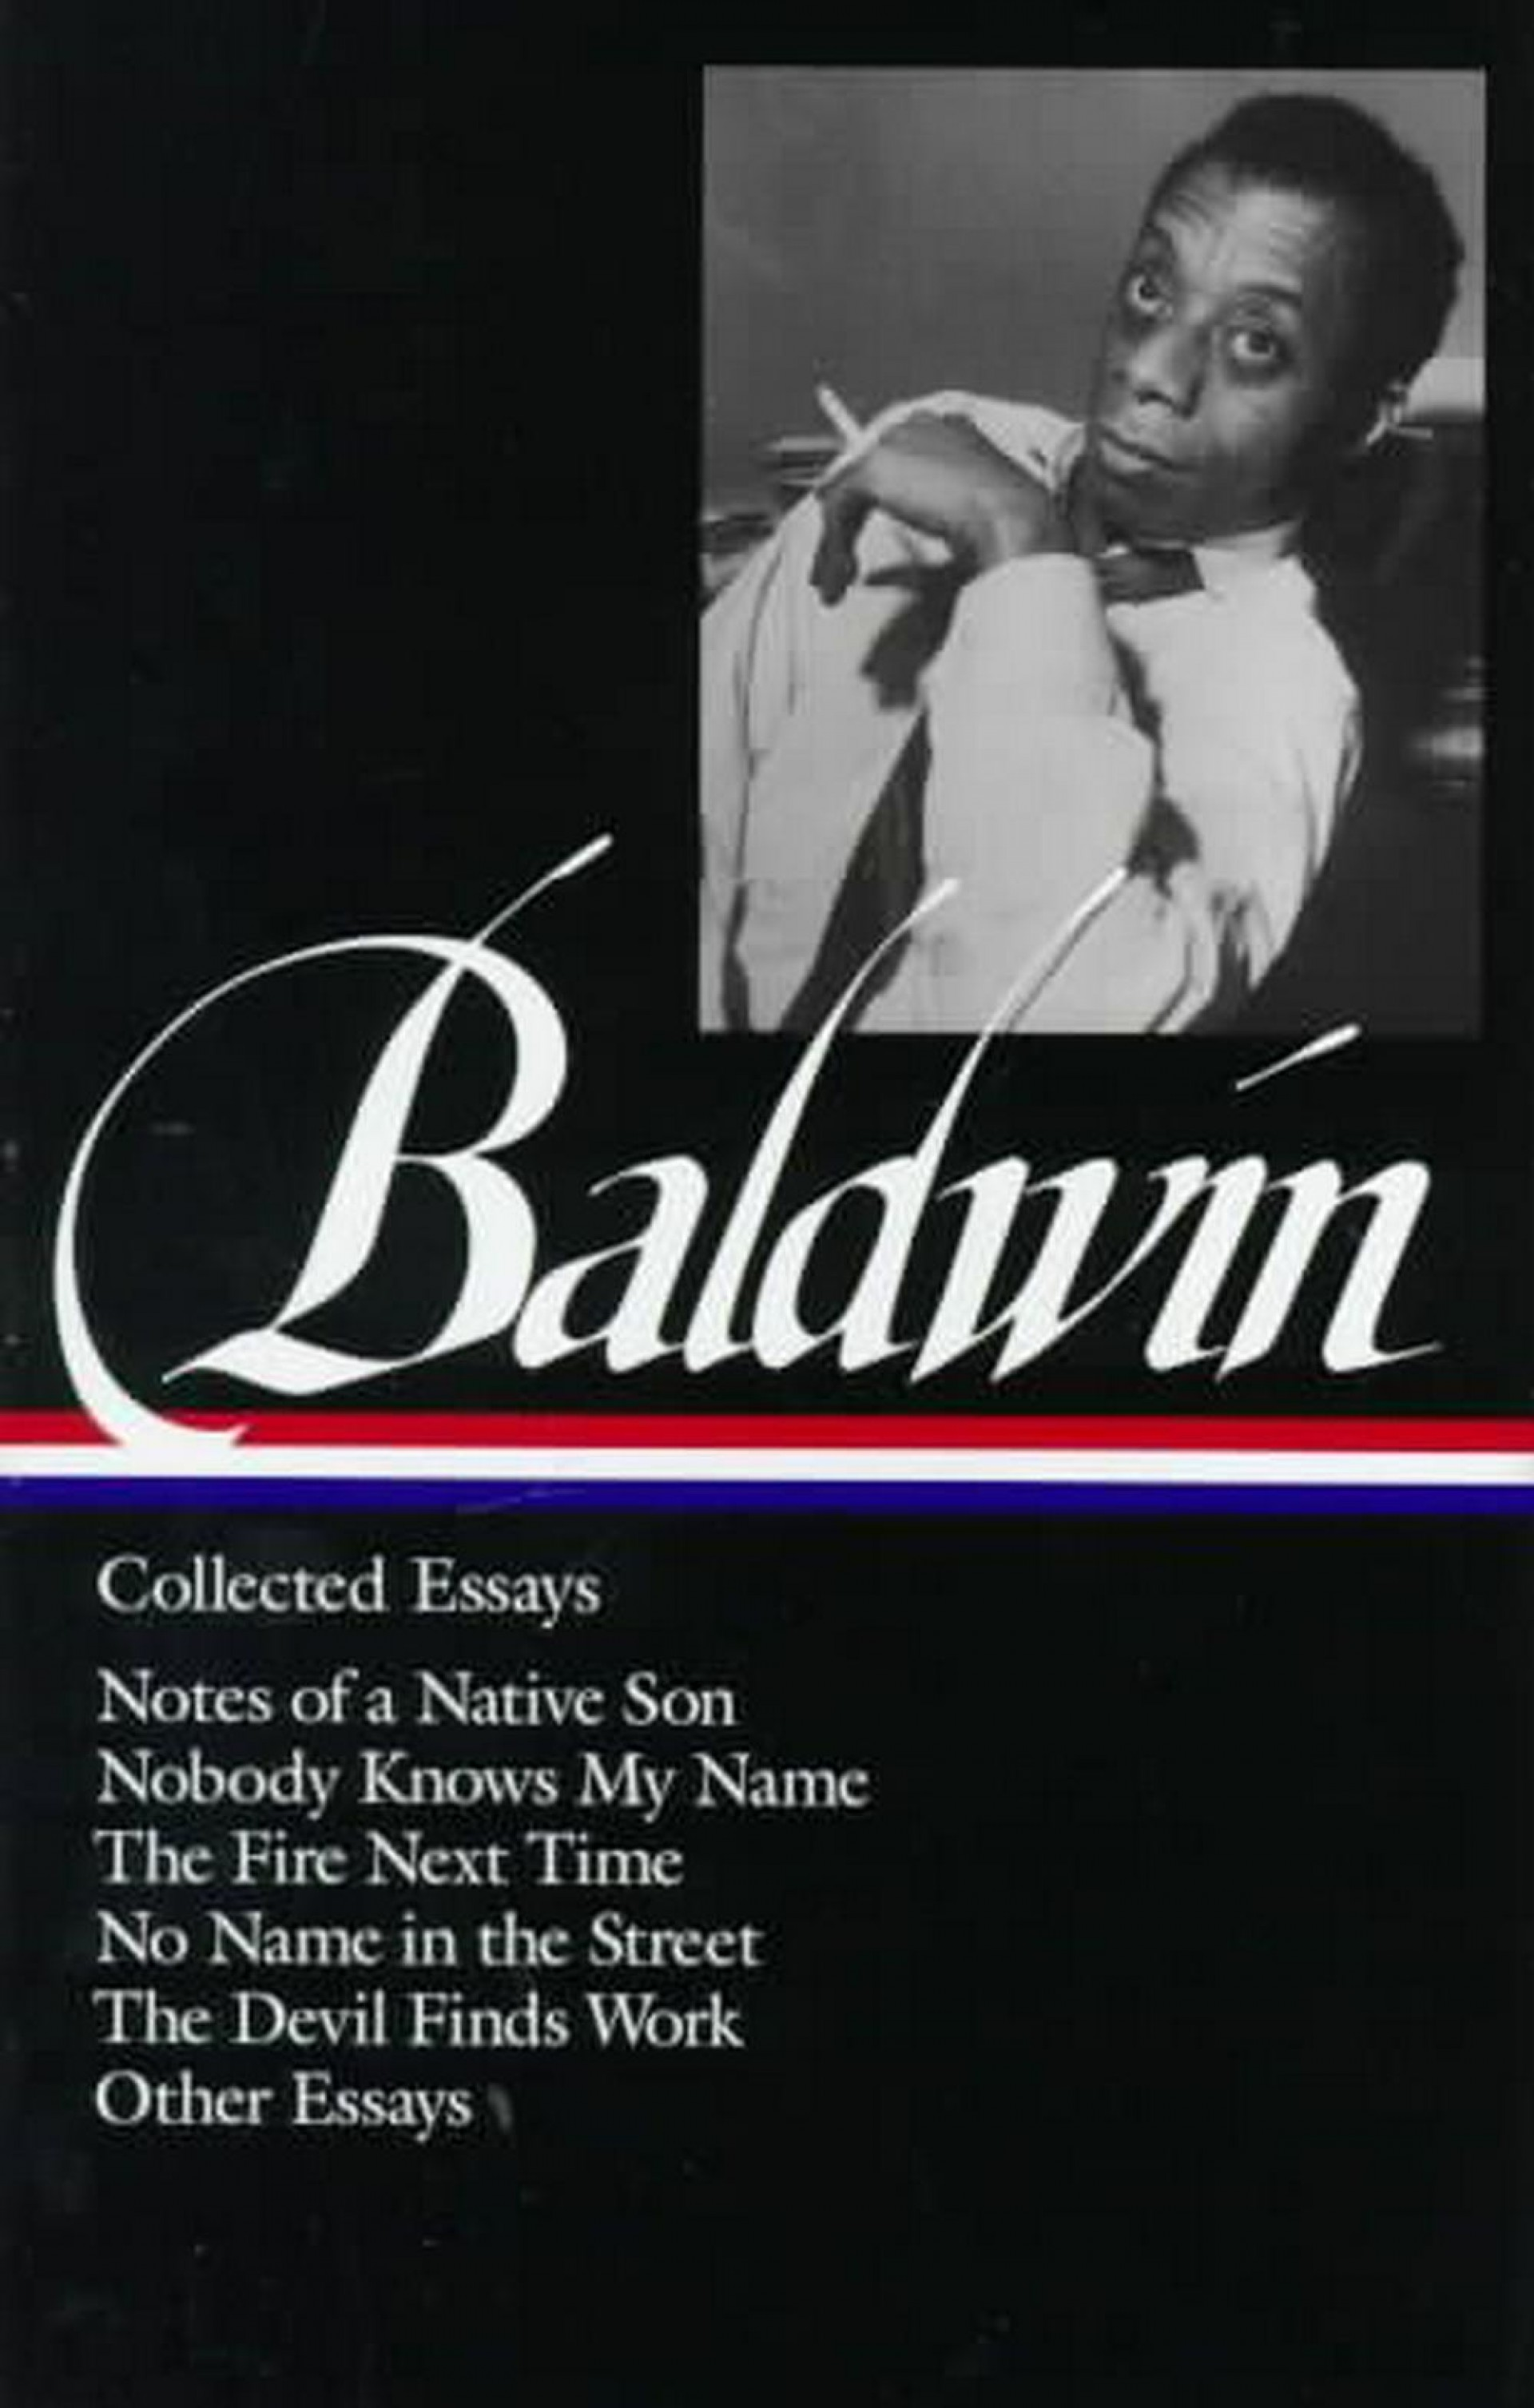 007 James Baldwin Collected Essays 9781883011529r5c3810cfda494 Essay Wondrous Google Books Pdf Table Of Contents 1920